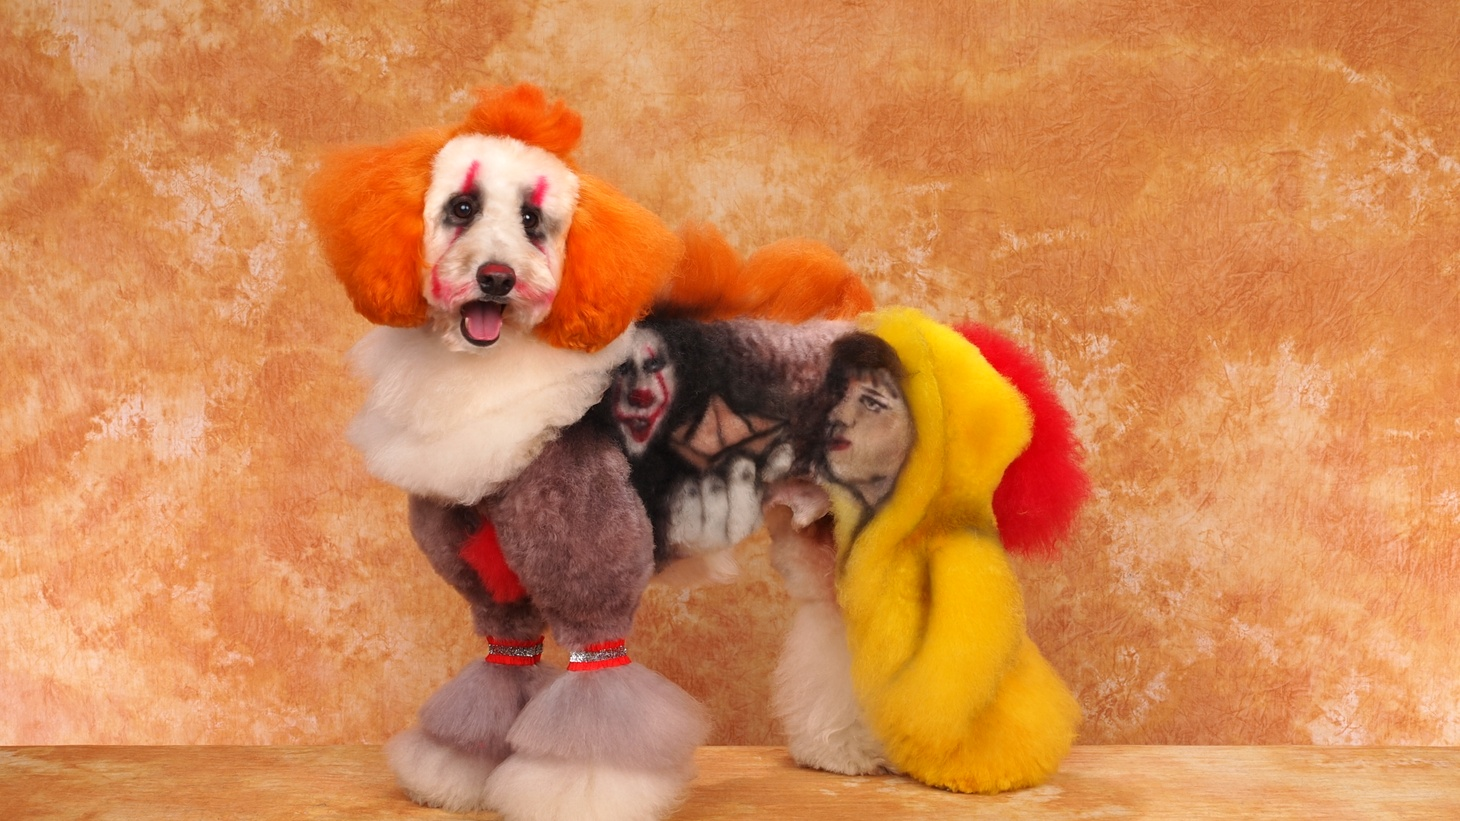 """This dog, owned by Angela Kumpe, is part of the creative grooming competition and styled after Pennywise from the movie """"It."""""""